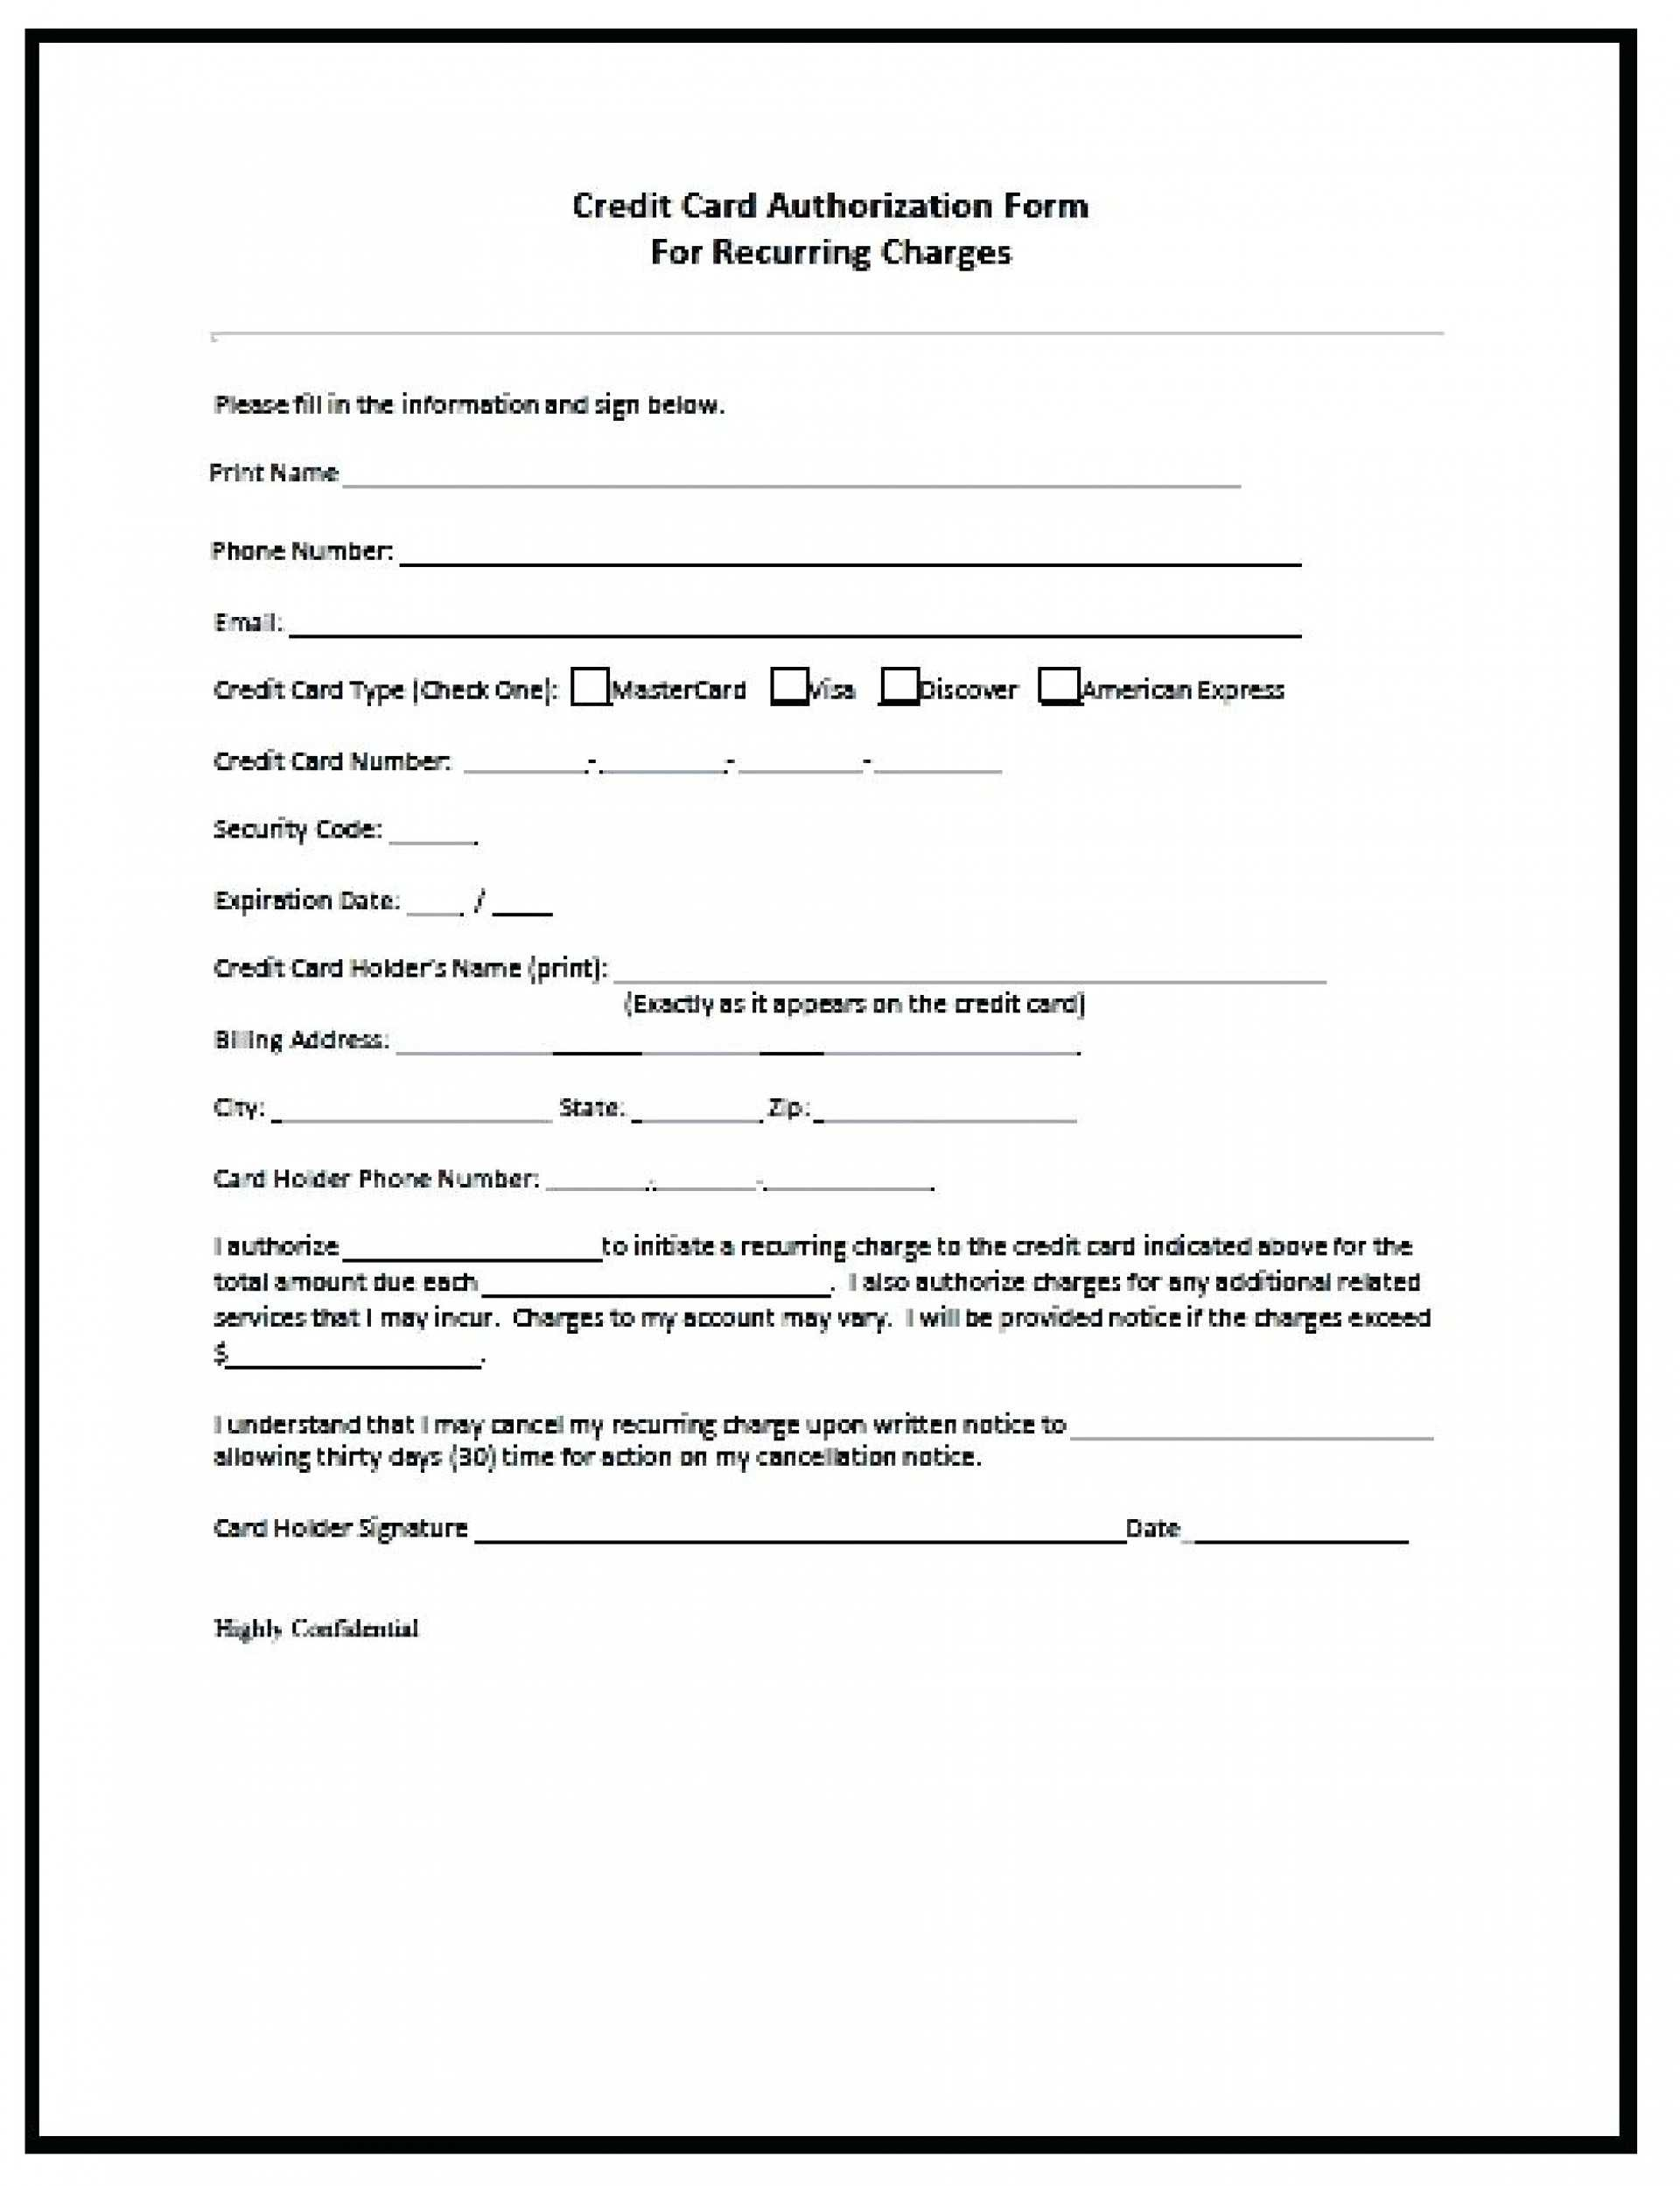 Credit Card Authorization Form Template Free – Mahre Intended For Order Form With Credit Card Template